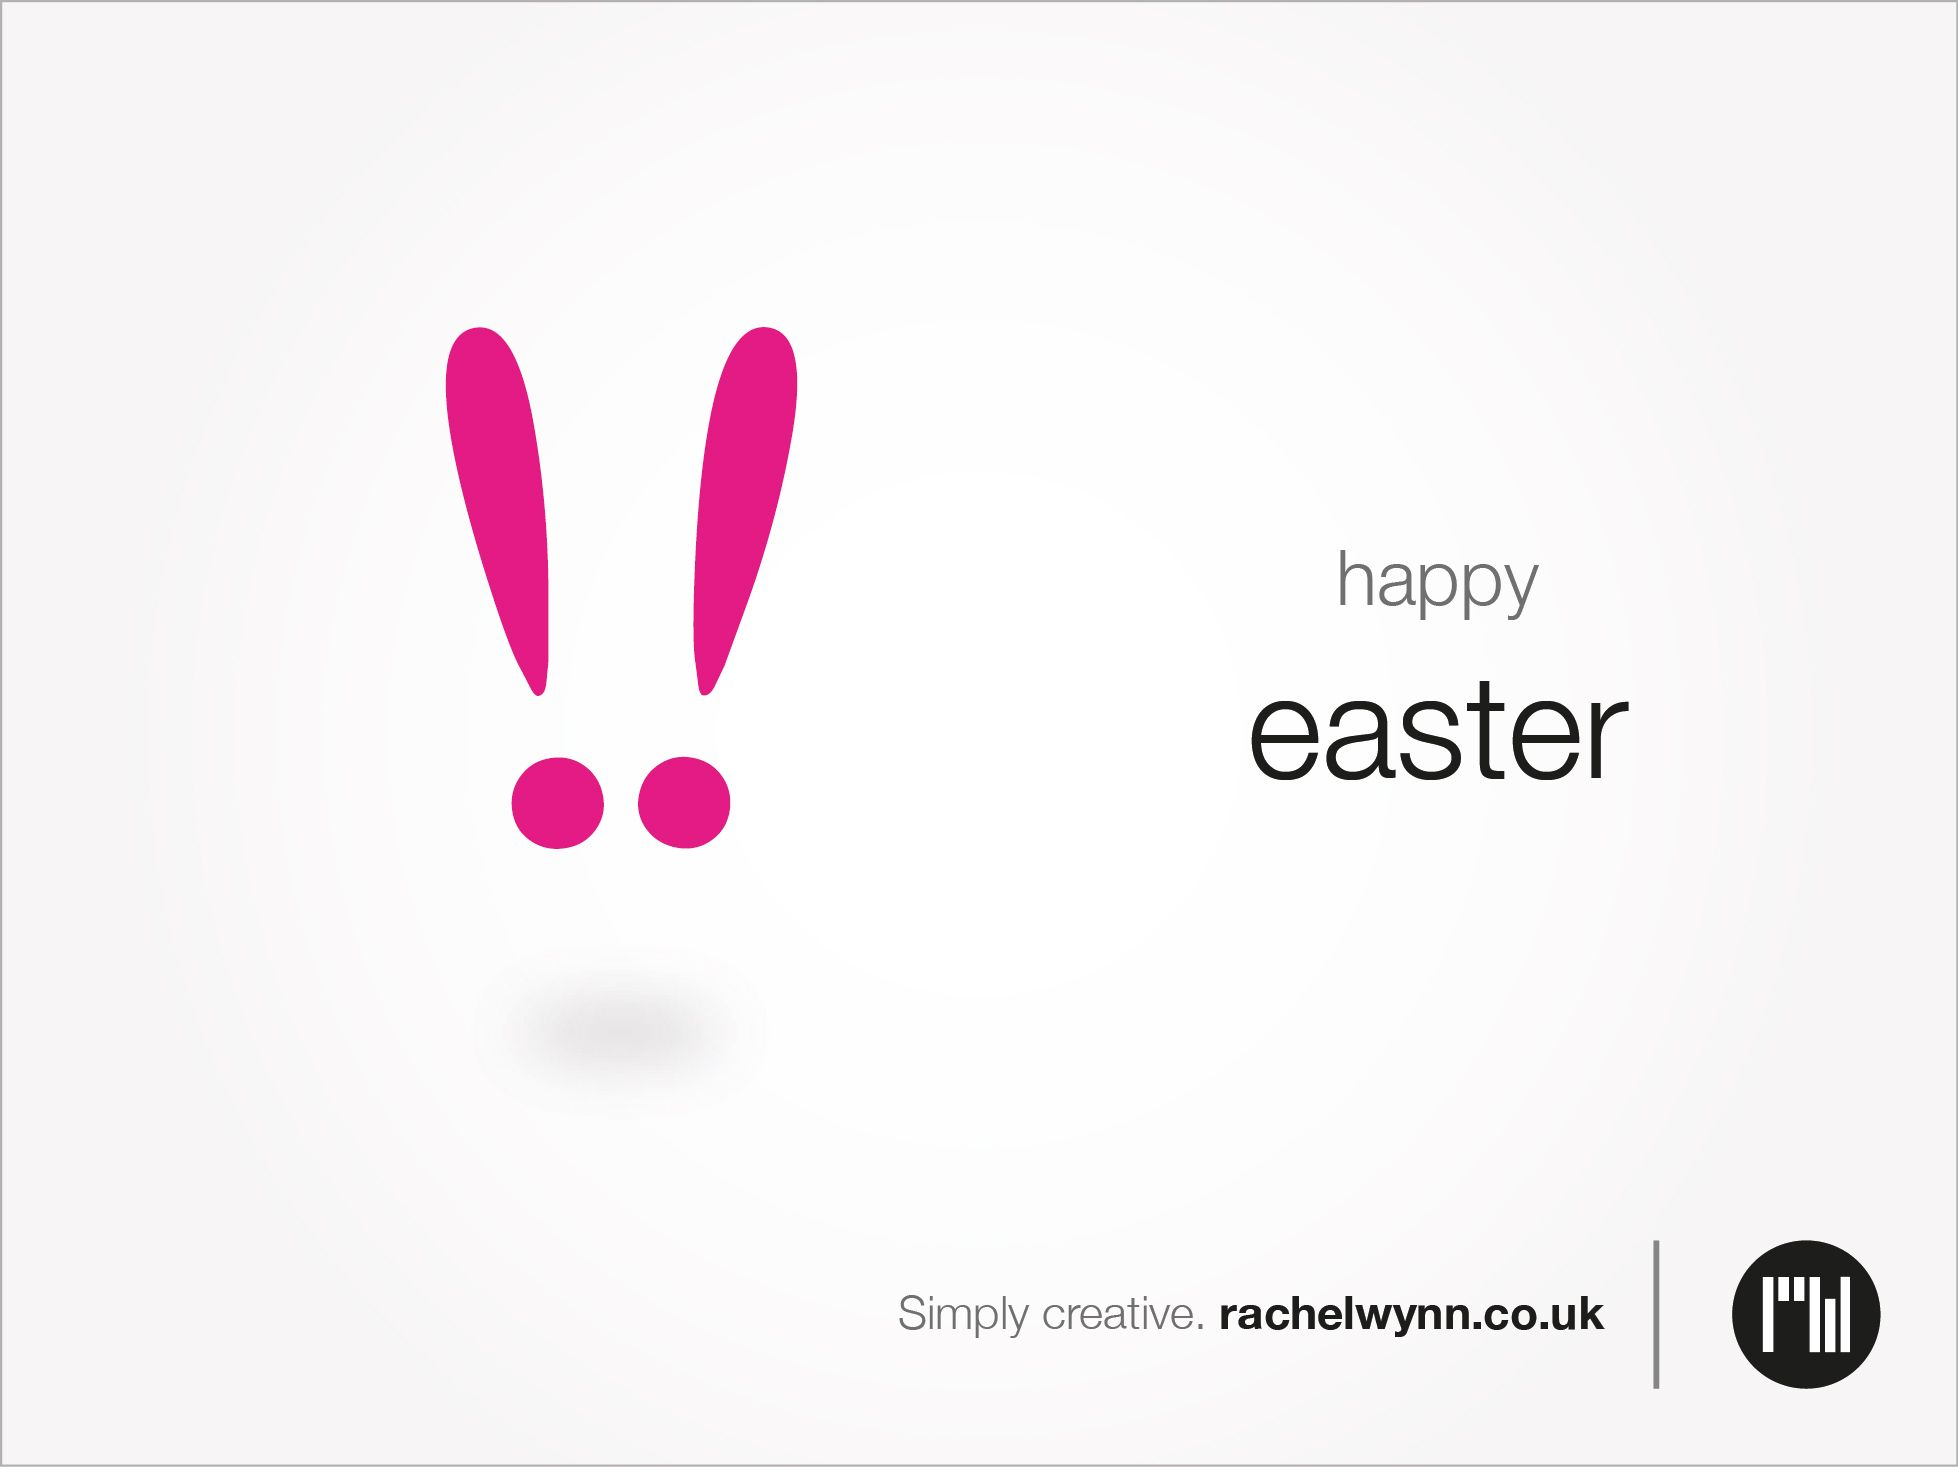 Self Promotion: Adcept: Happy easter. Simply creative